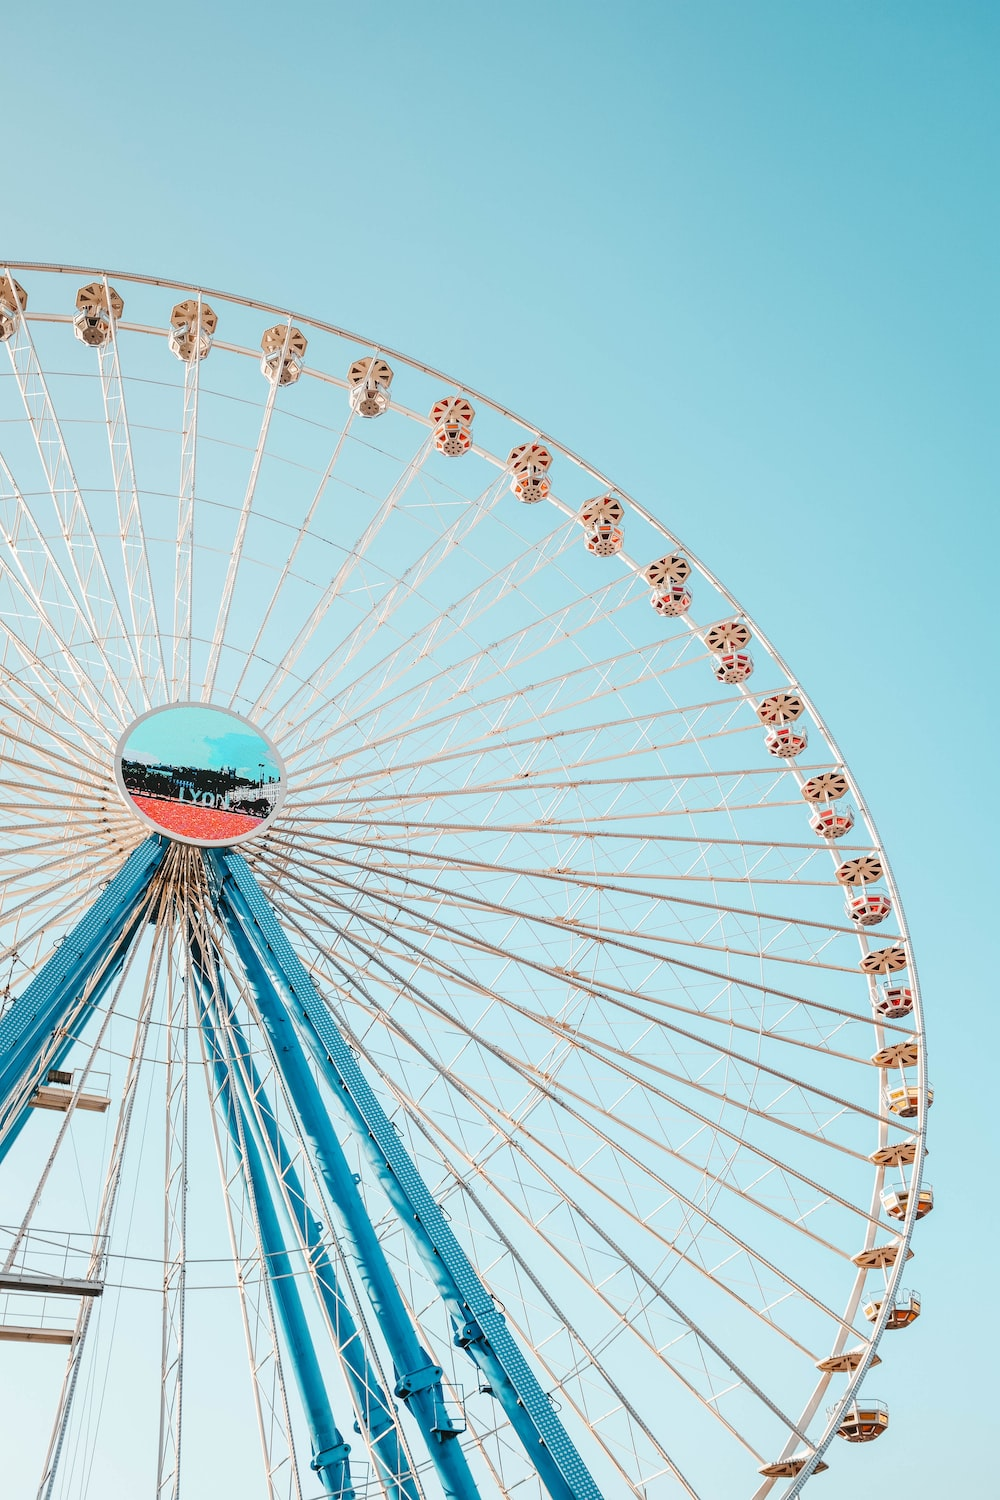 blue and white ferris wheel photograph